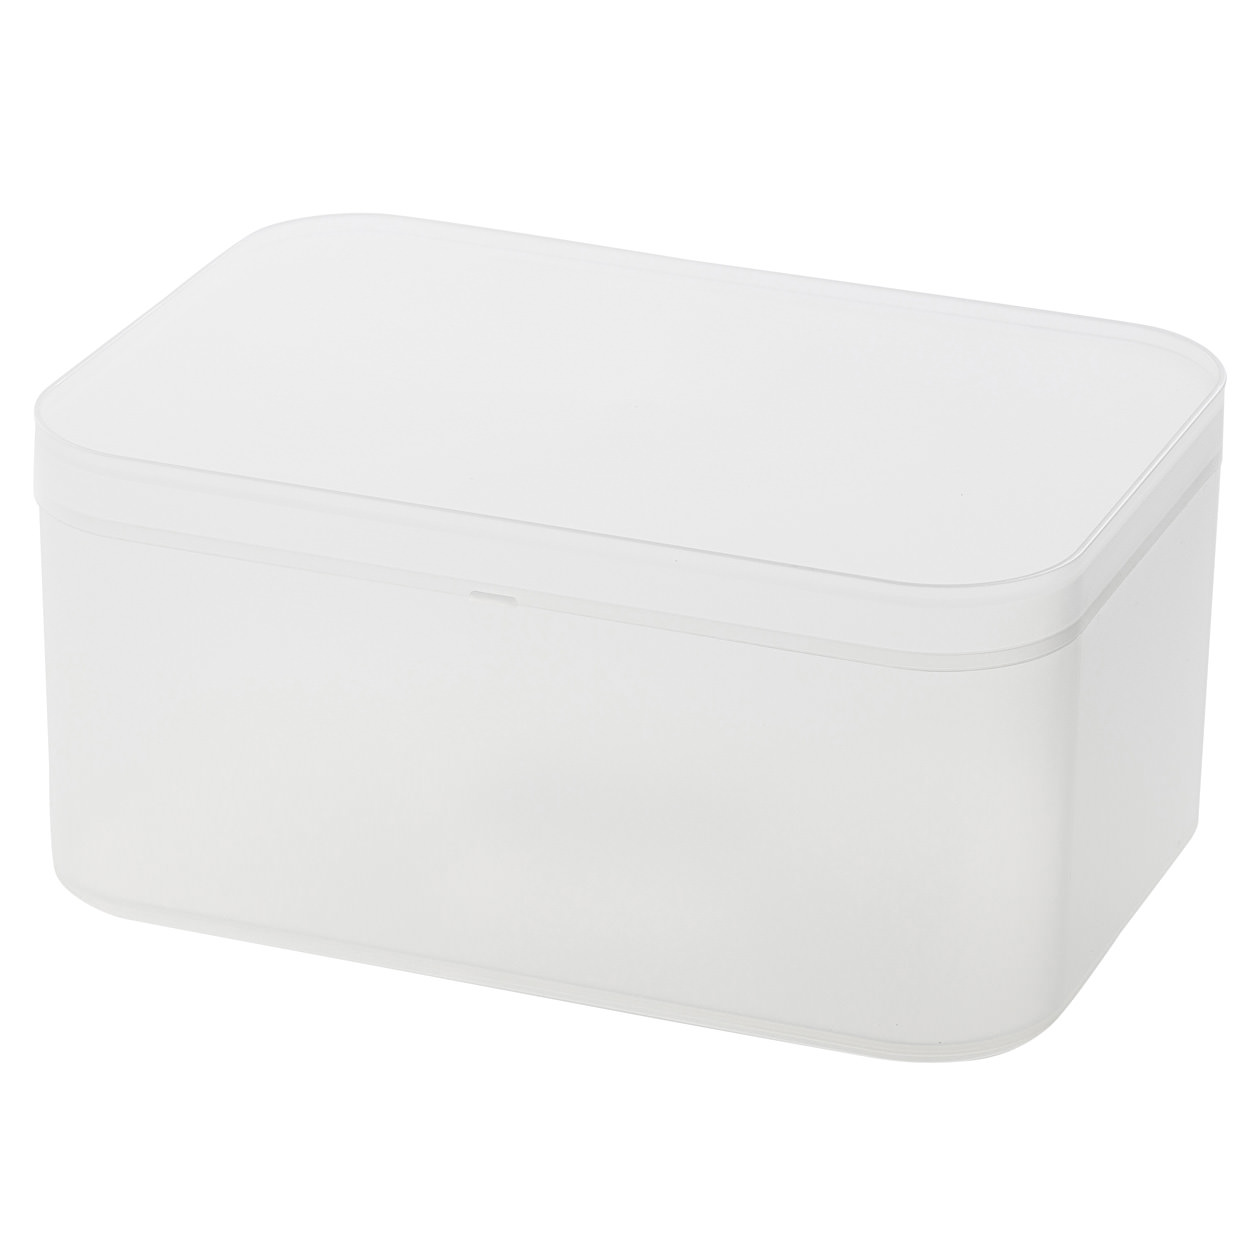 PP make box with lid